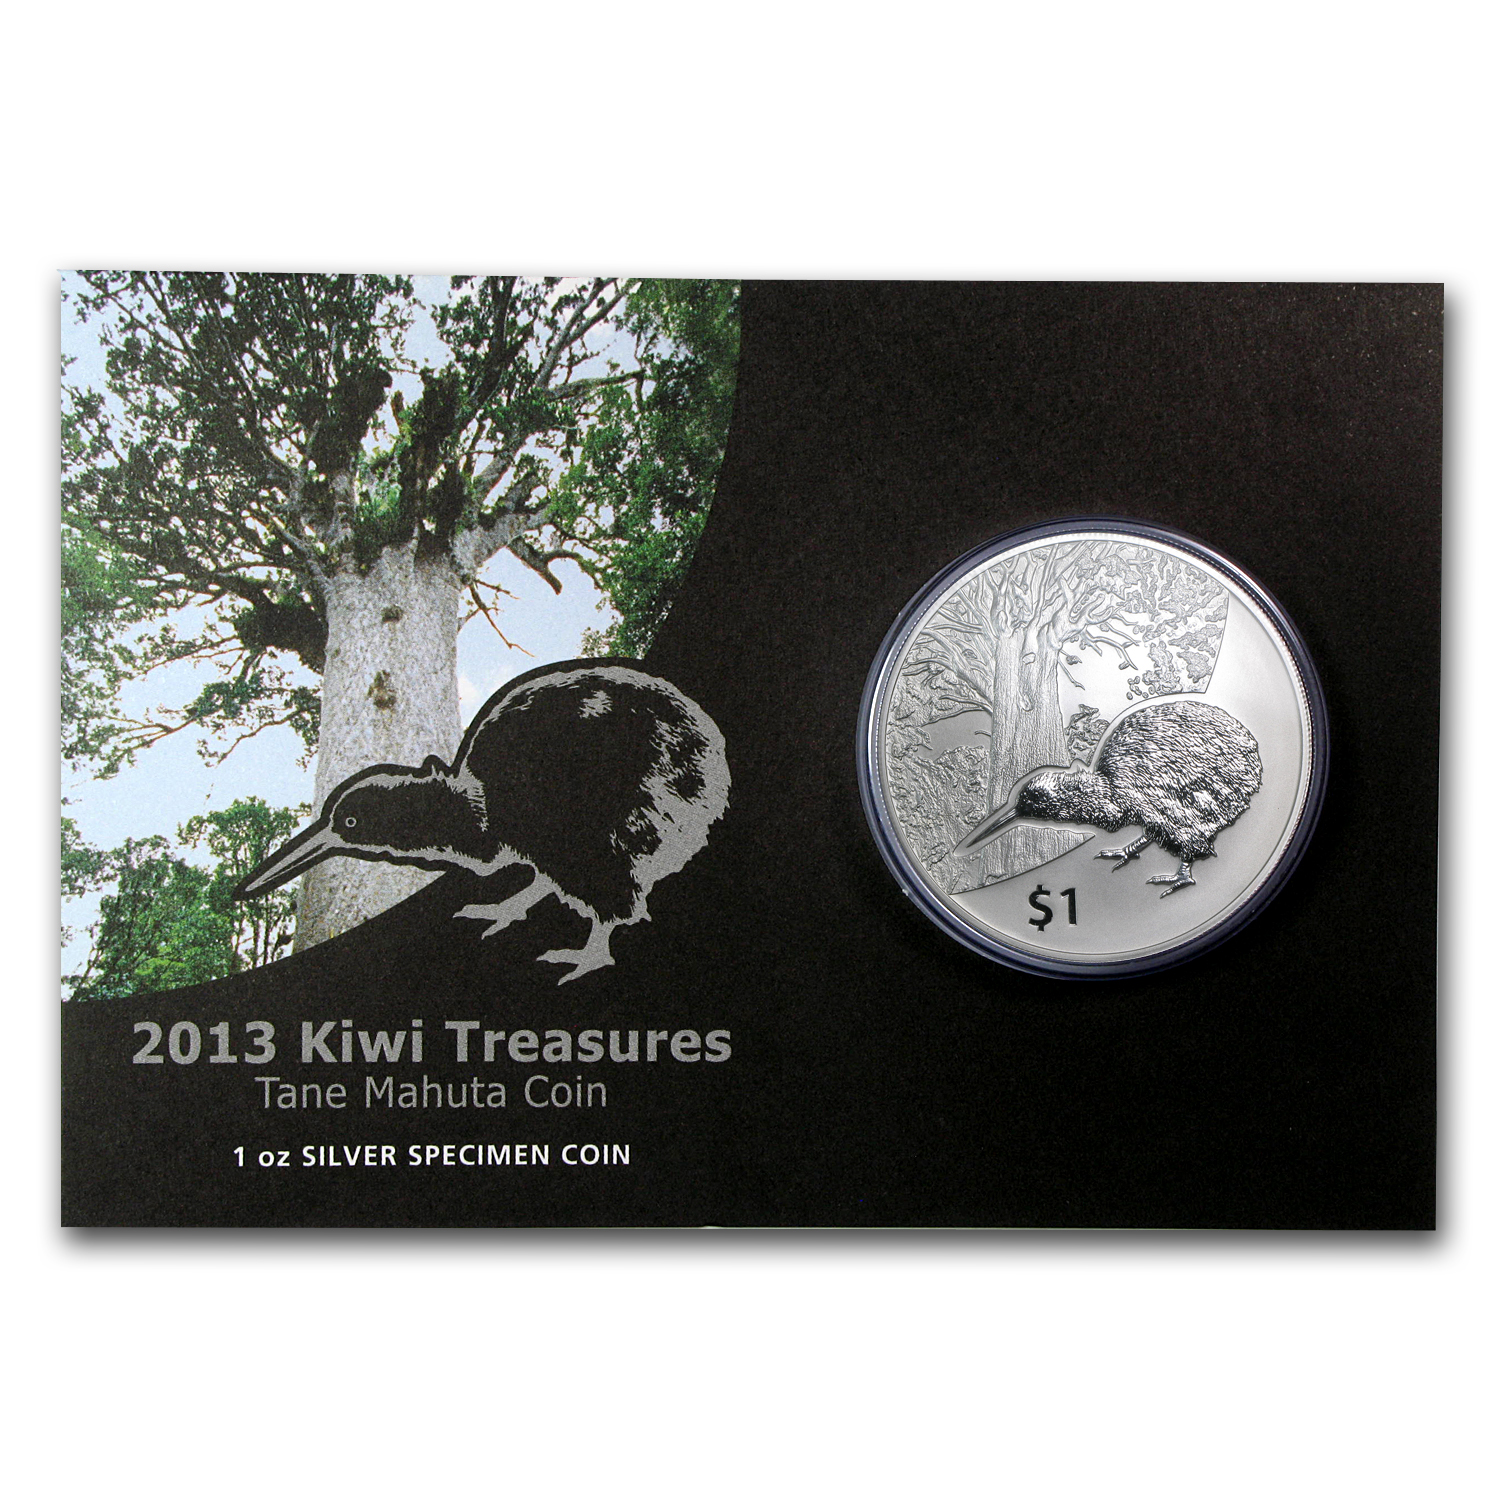 2013 1 oz Silver New Zealand Treasures $1 Kiwi Coin